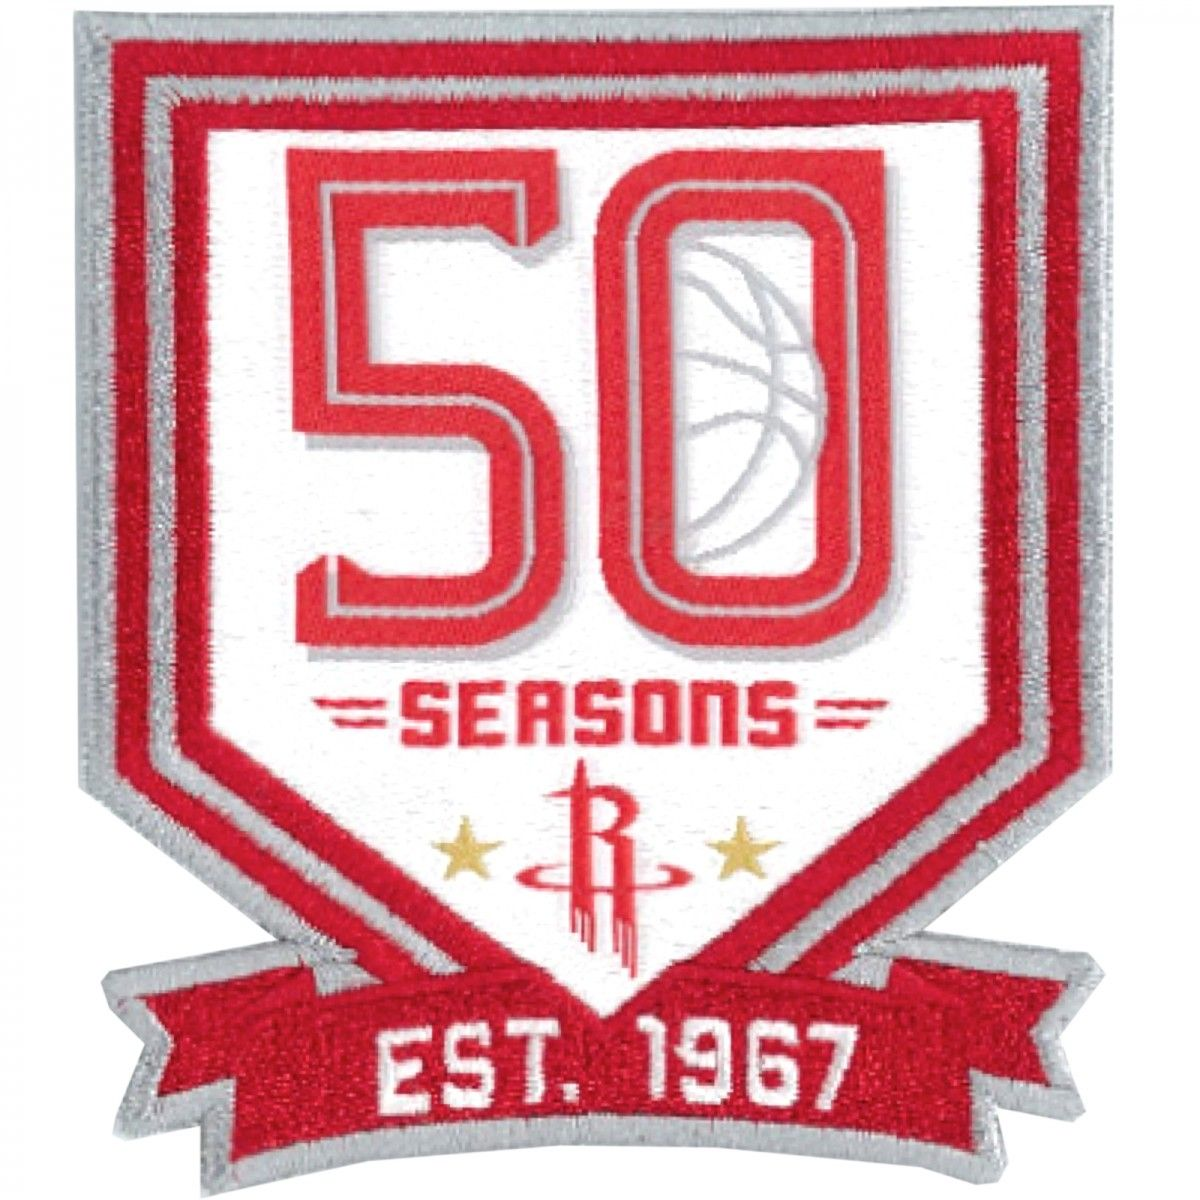 50 seasons of houston rockets basketball